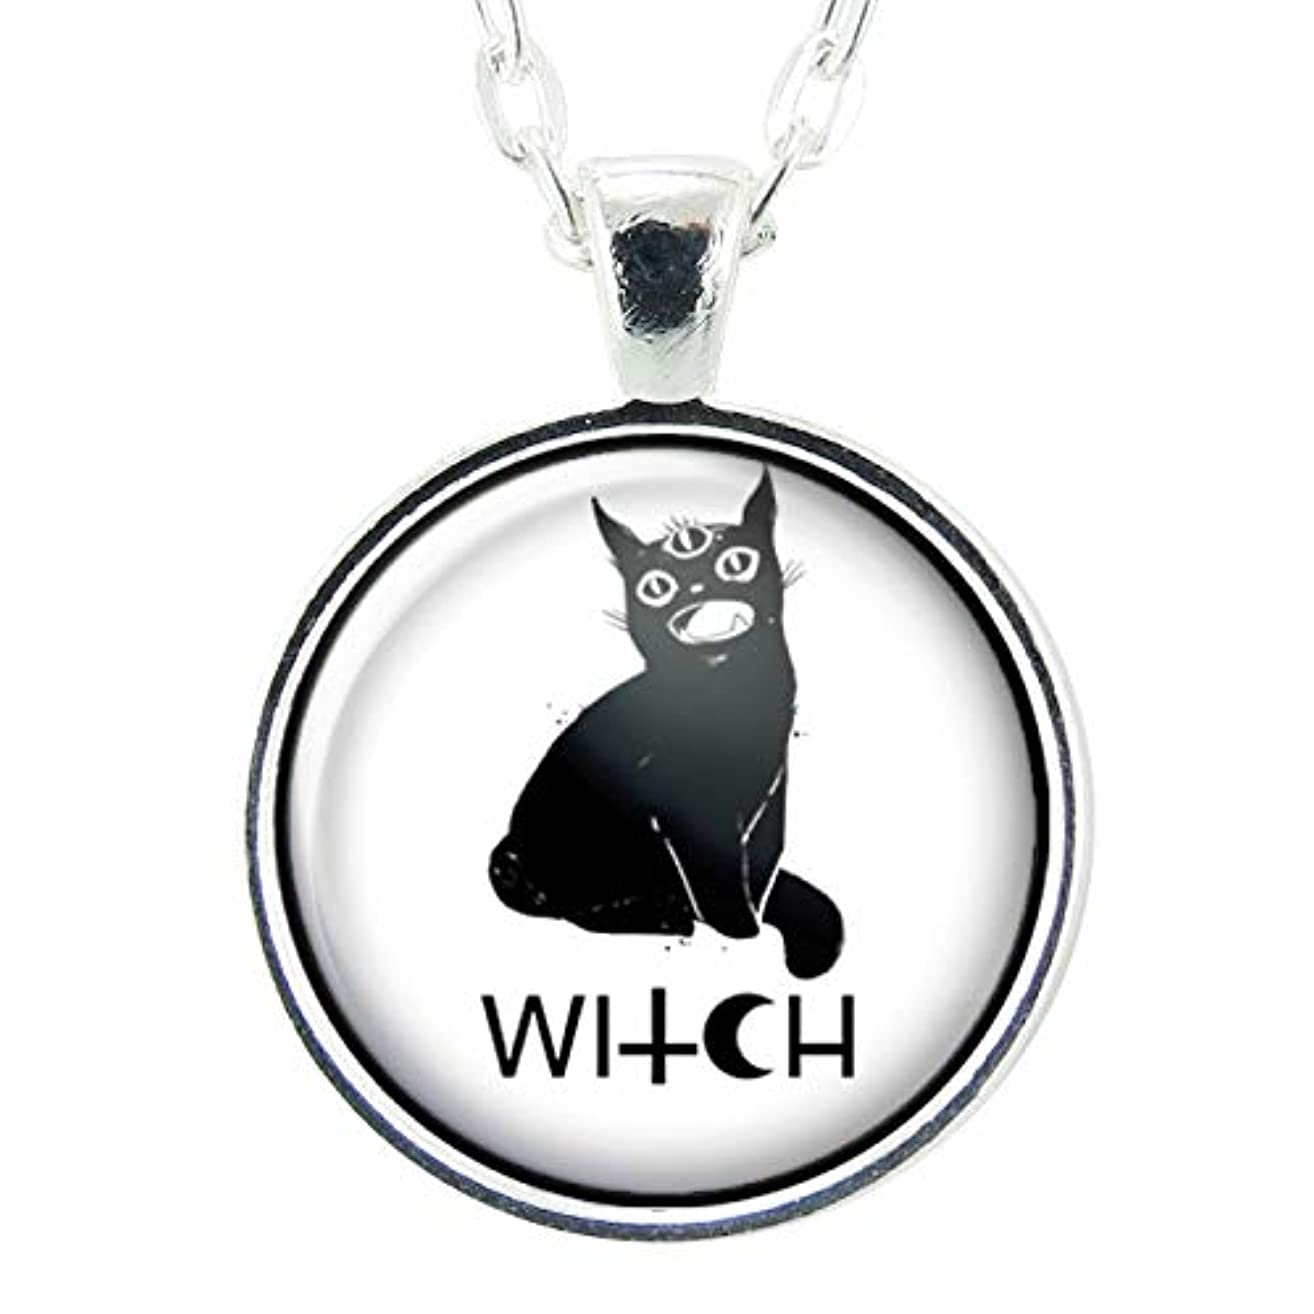 Black Cat Witch Handmade Art Pendant, Black And White Charm On Necklace Chain